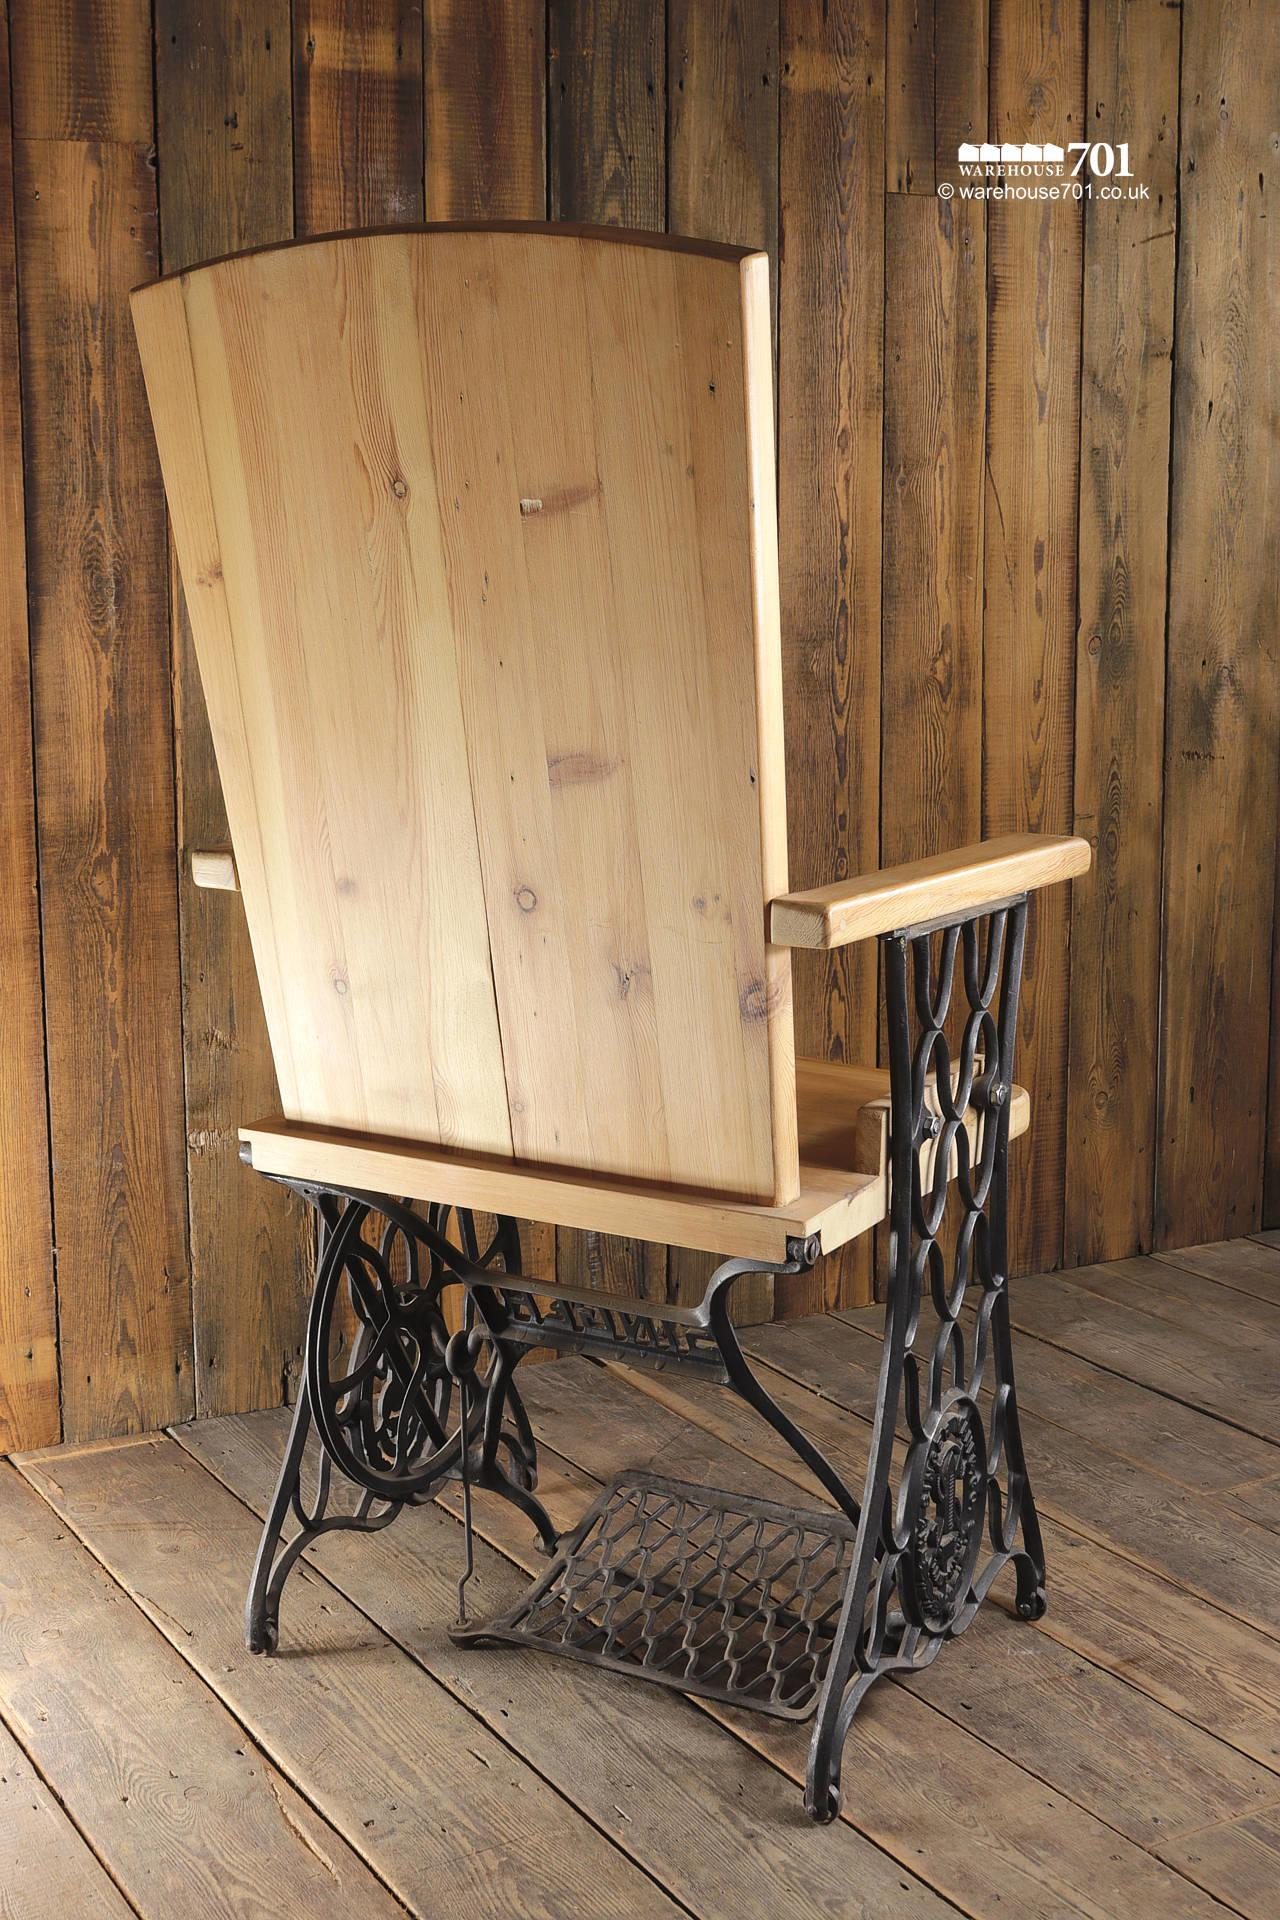 Handmade Chair with Authentic Singer Sewing Machine Treadle Frame #8